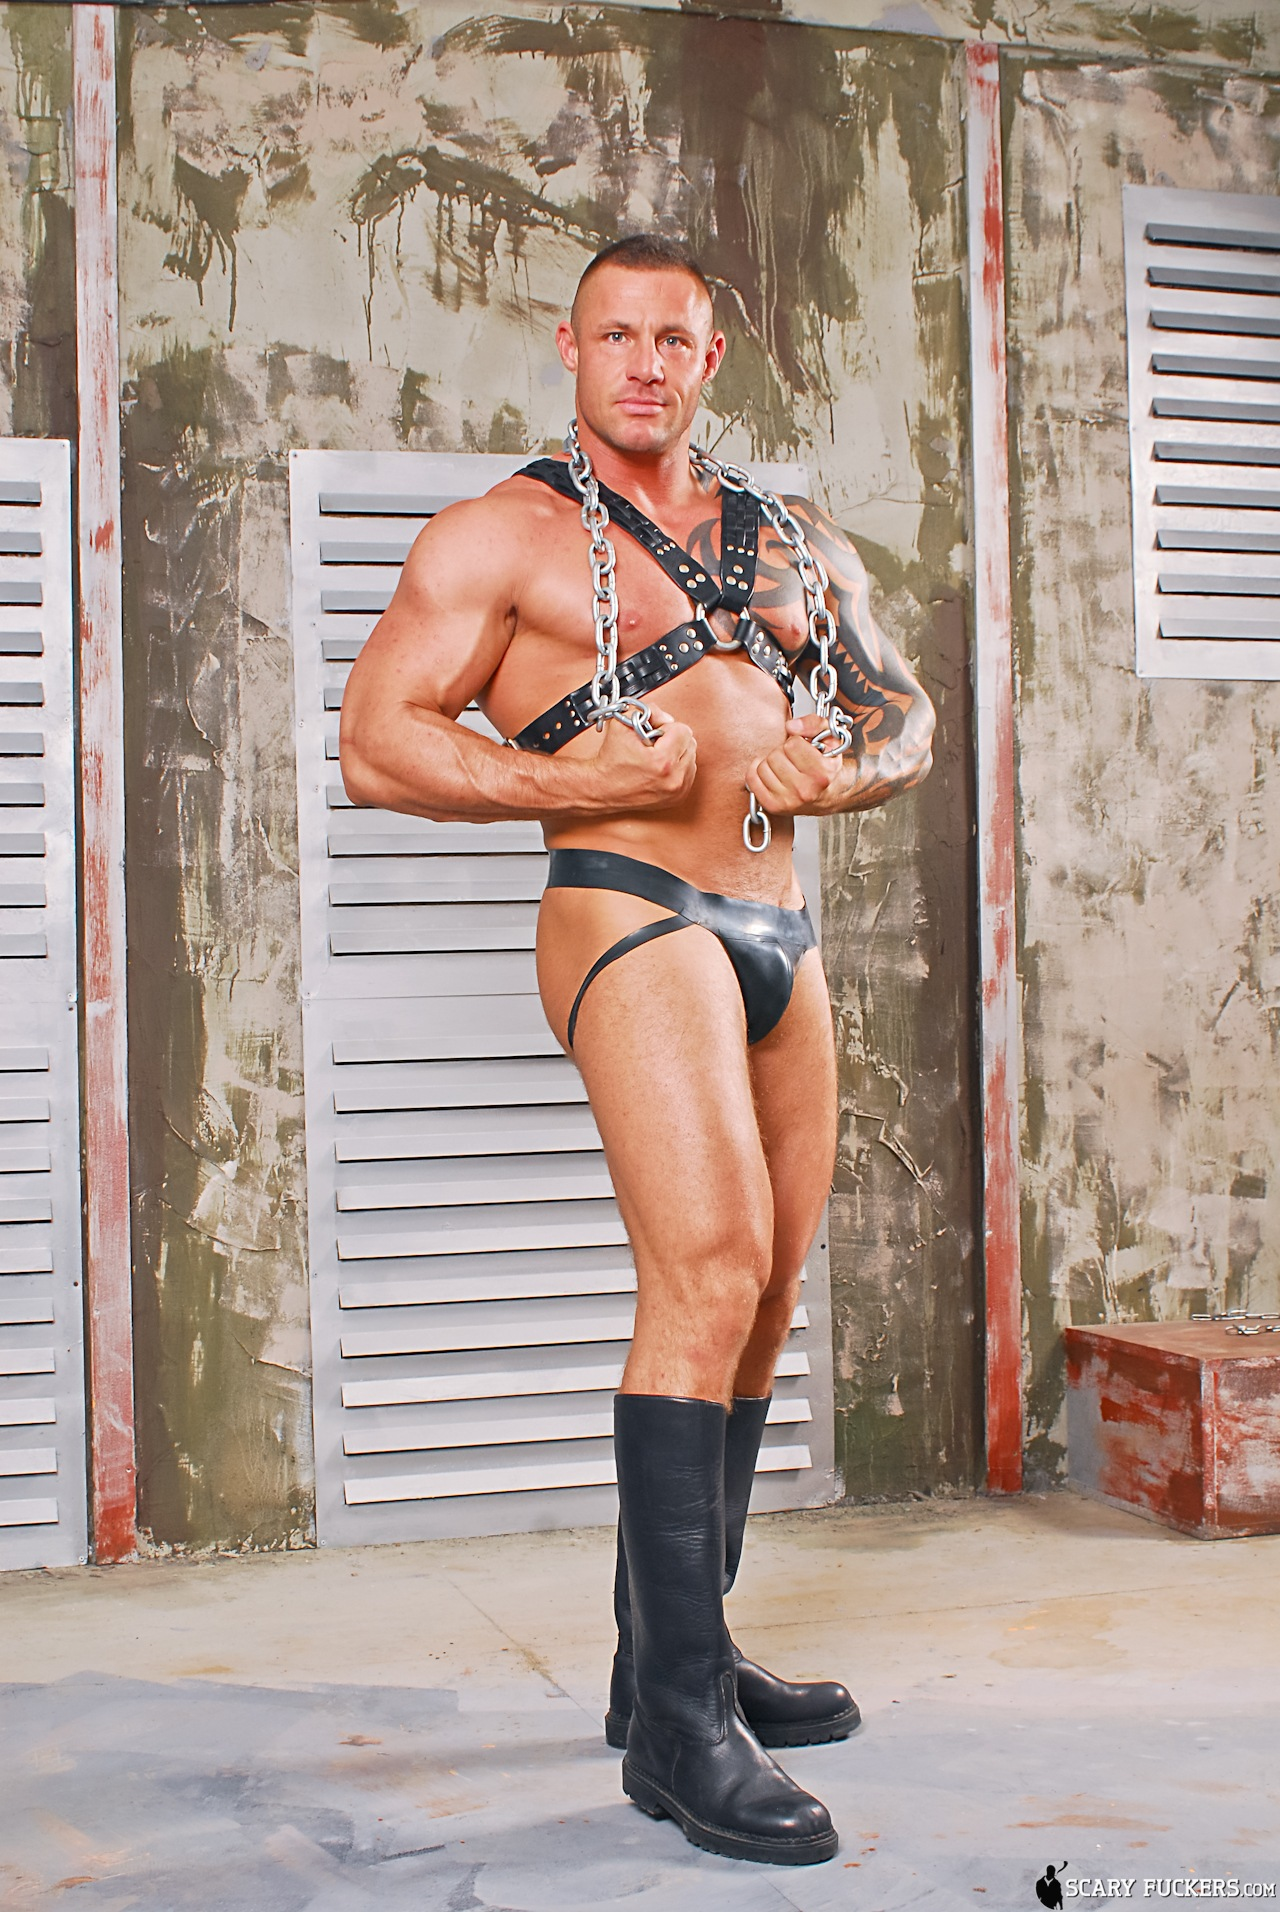 big muscle man in leather gear